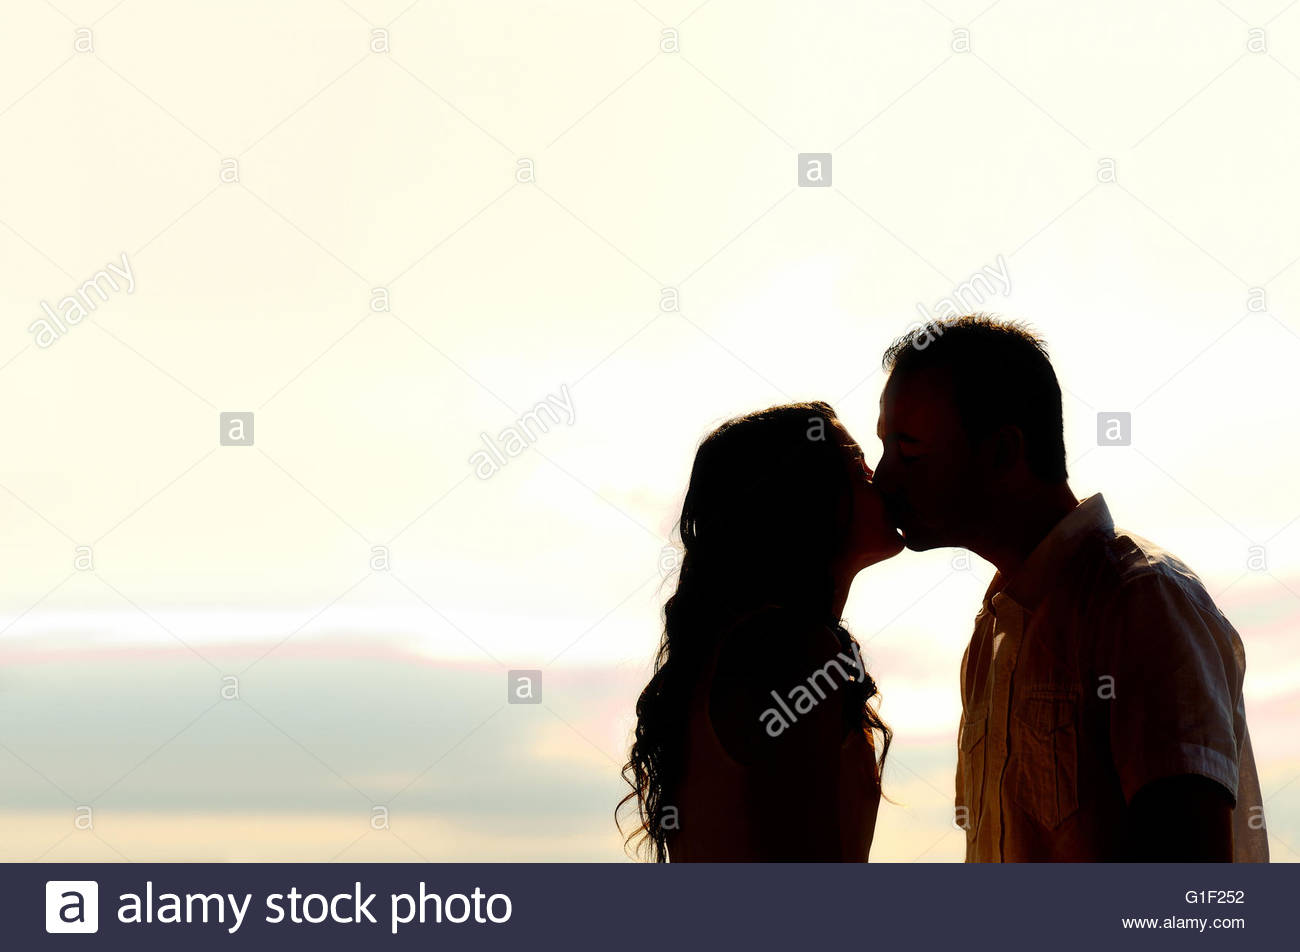 1300x952 Silhouette Couple Kissing Stock Photos Amp Silhouette Couple Kissing